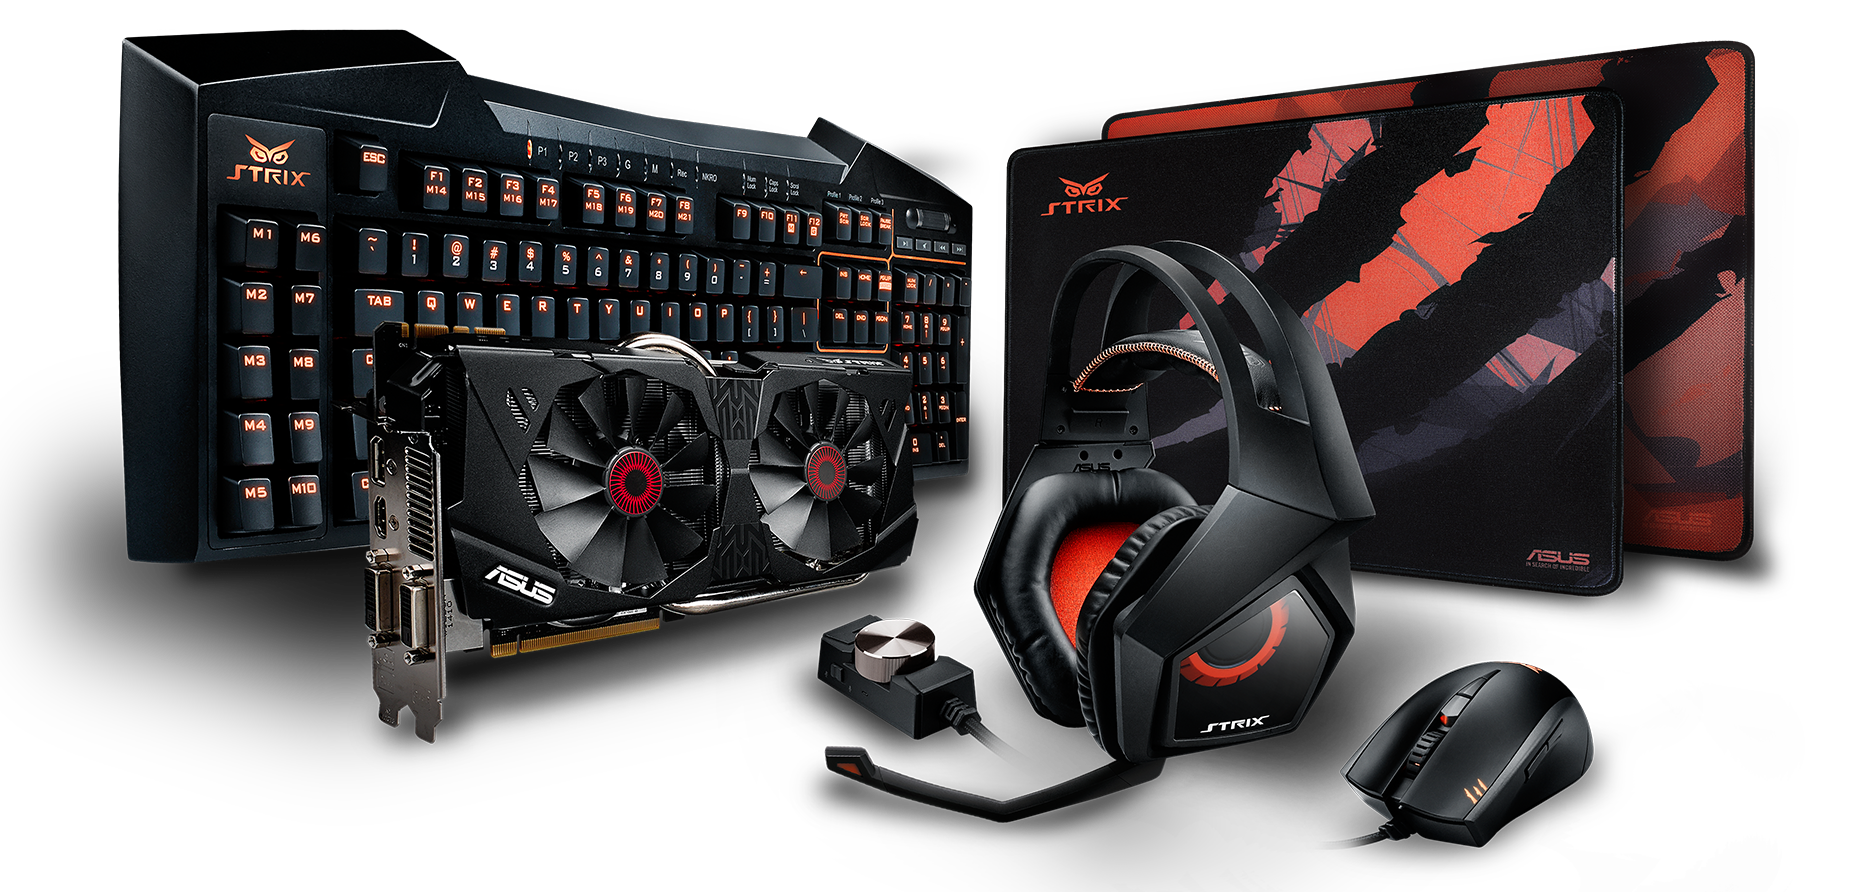 https://www.asus.com/websites/global/products/orAtqb5bPNiapuWg/img/hp/gaming_instincts.png